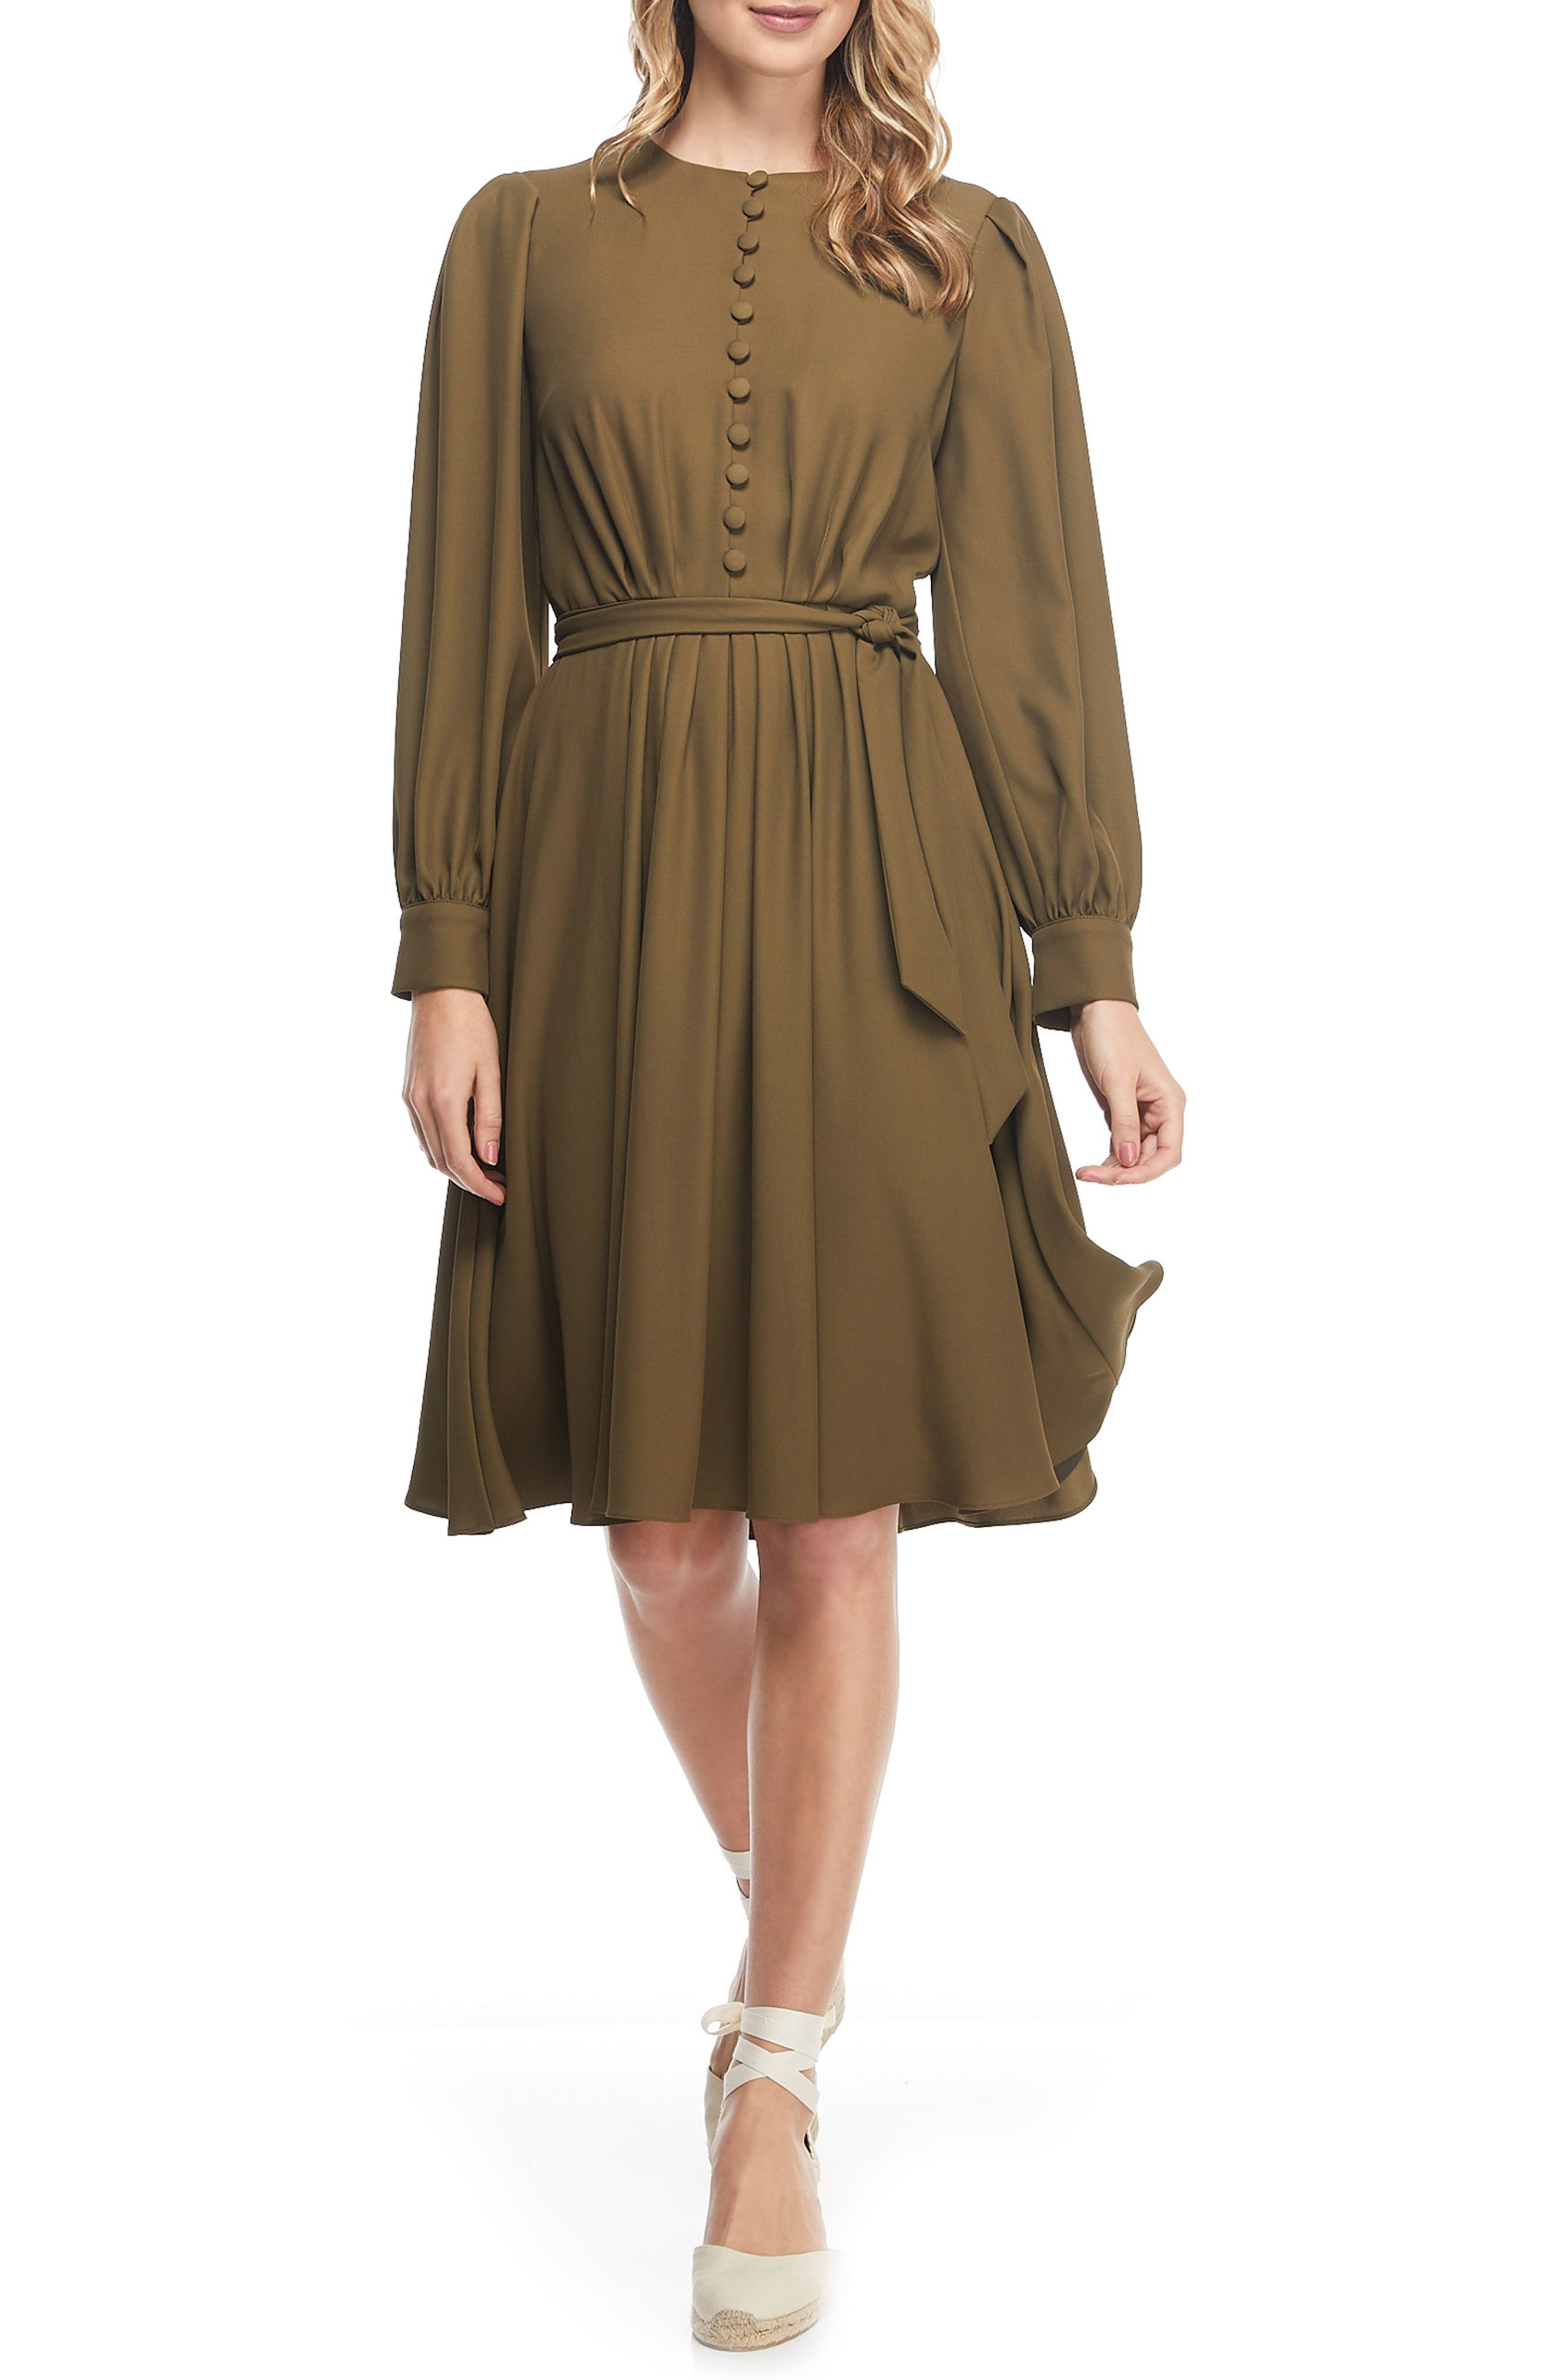 70s Dresses – Boho, Hippie, Disco, Wrap Dresses Womens Gal Meets Glam Collection Madelyn Stretch Crepe Dress $118.80 AT vintagedancer.com